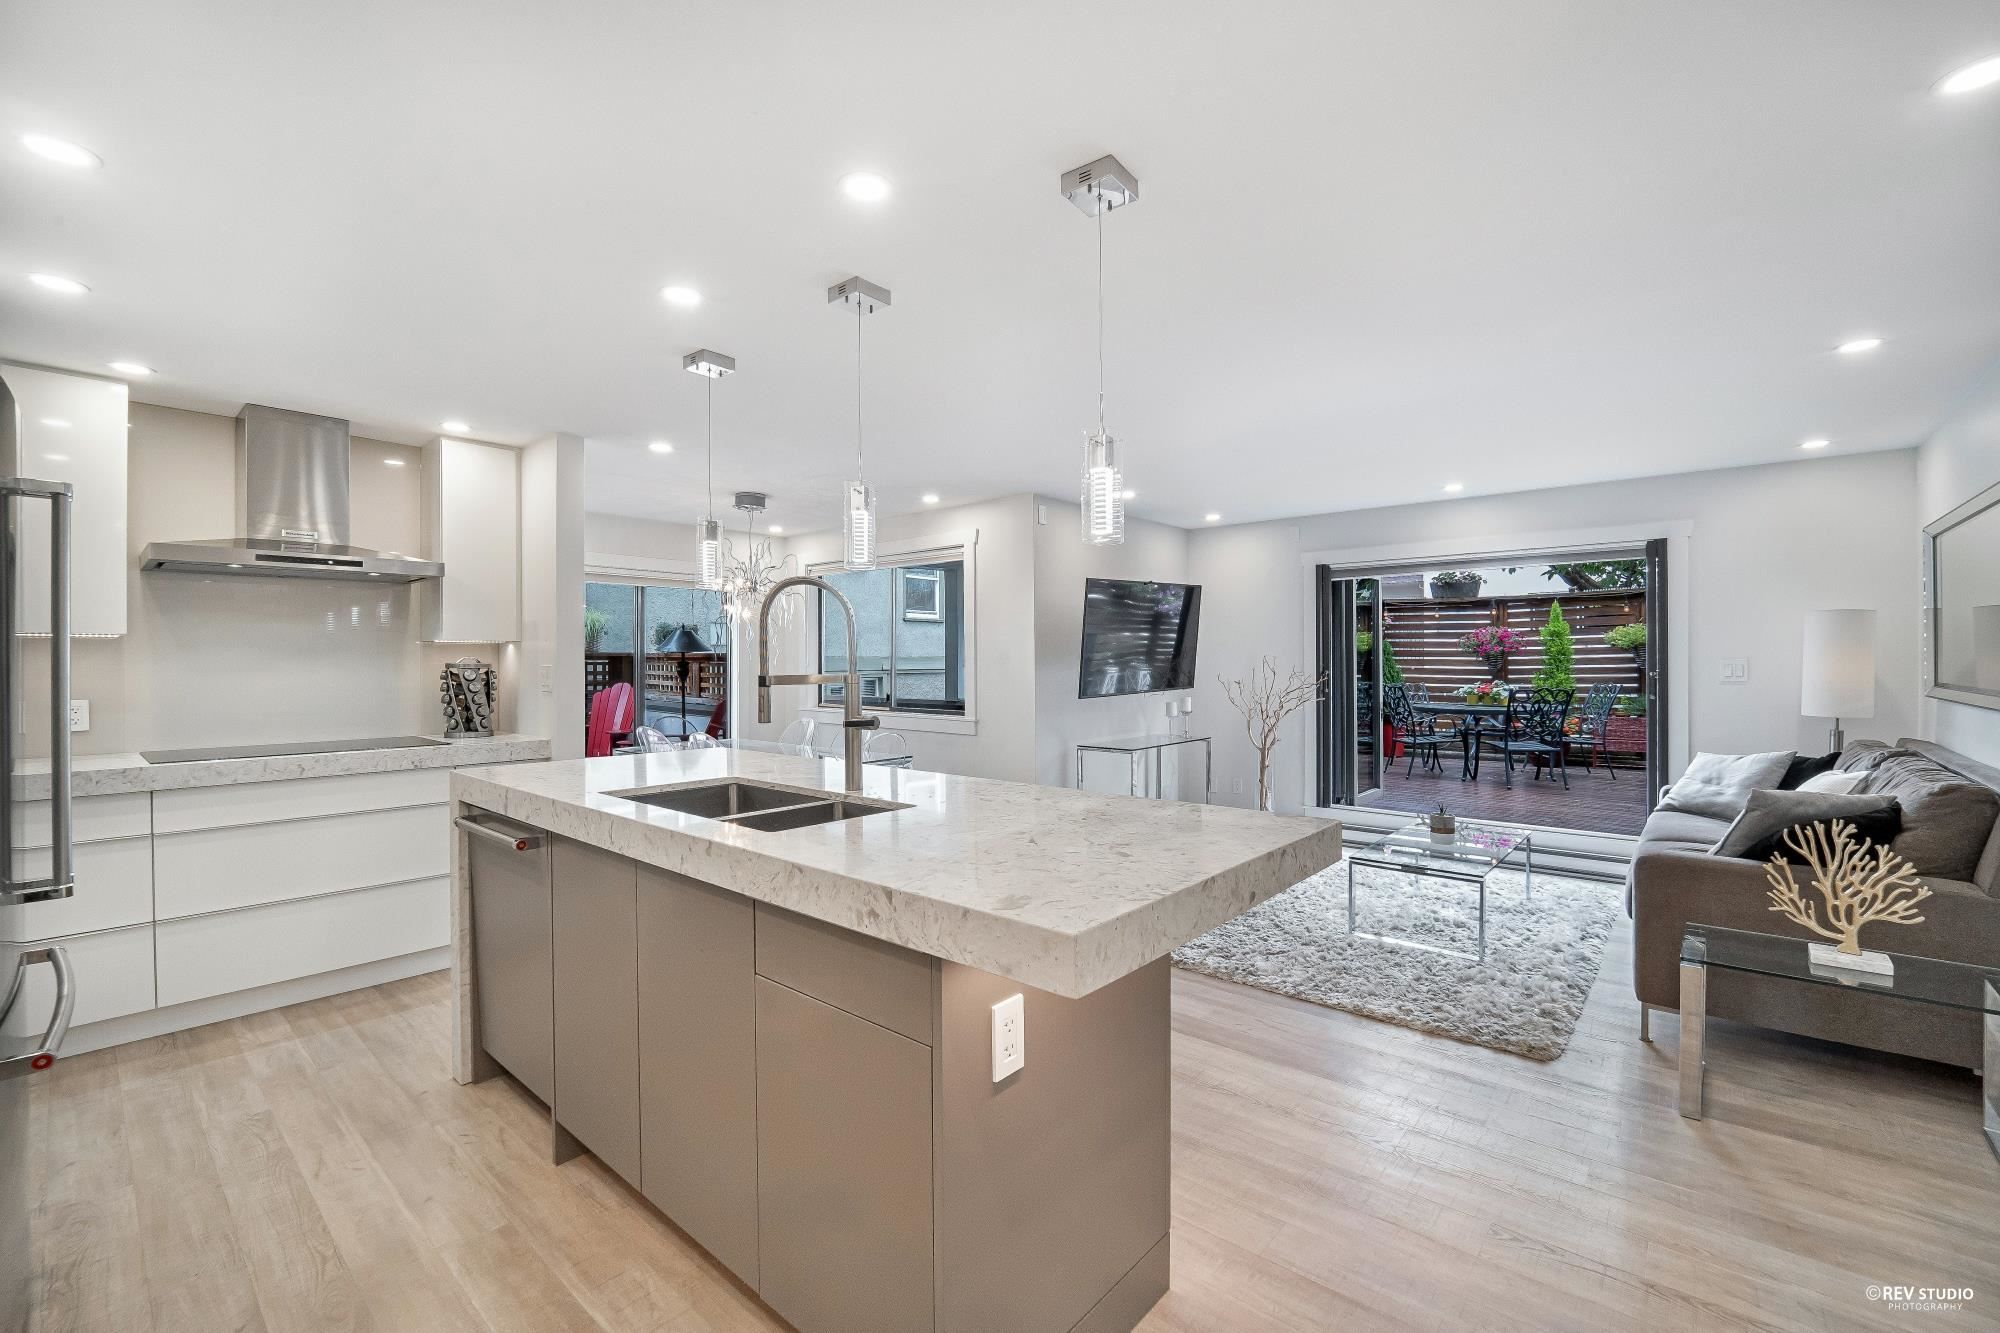 """Main Photo: 103 1633 W 11TH Avenue in Vancouver: Fairview VW Condo for sale in """"Dorchester Place"""" (Vancouver West)  : MLS®# R2608153"""